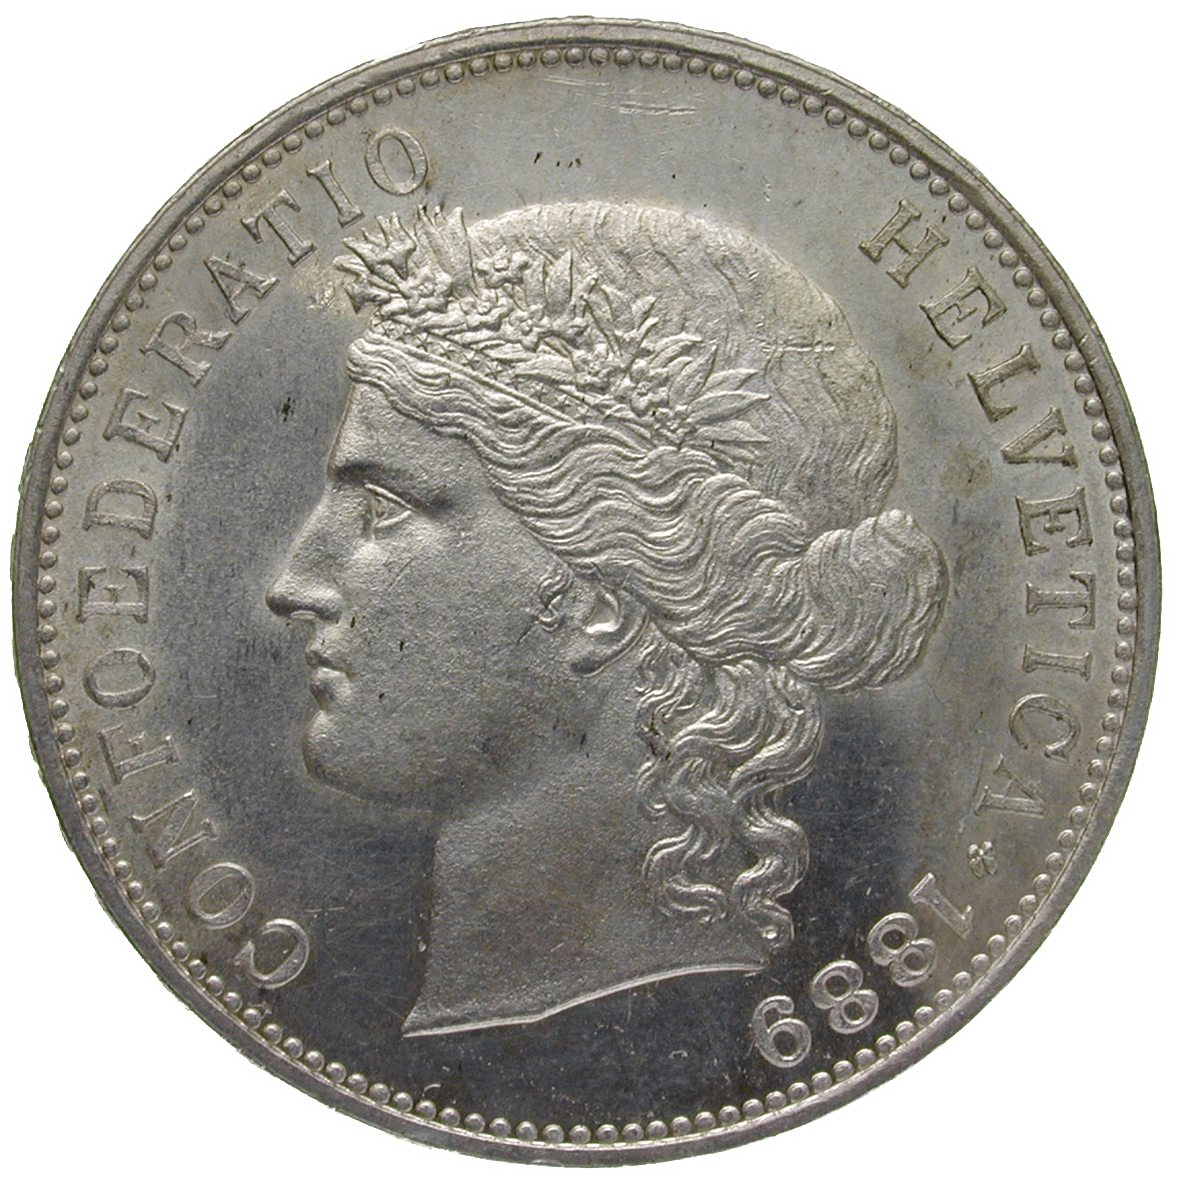 Swiss Confederation, 5 Franks 1889 (obverse)